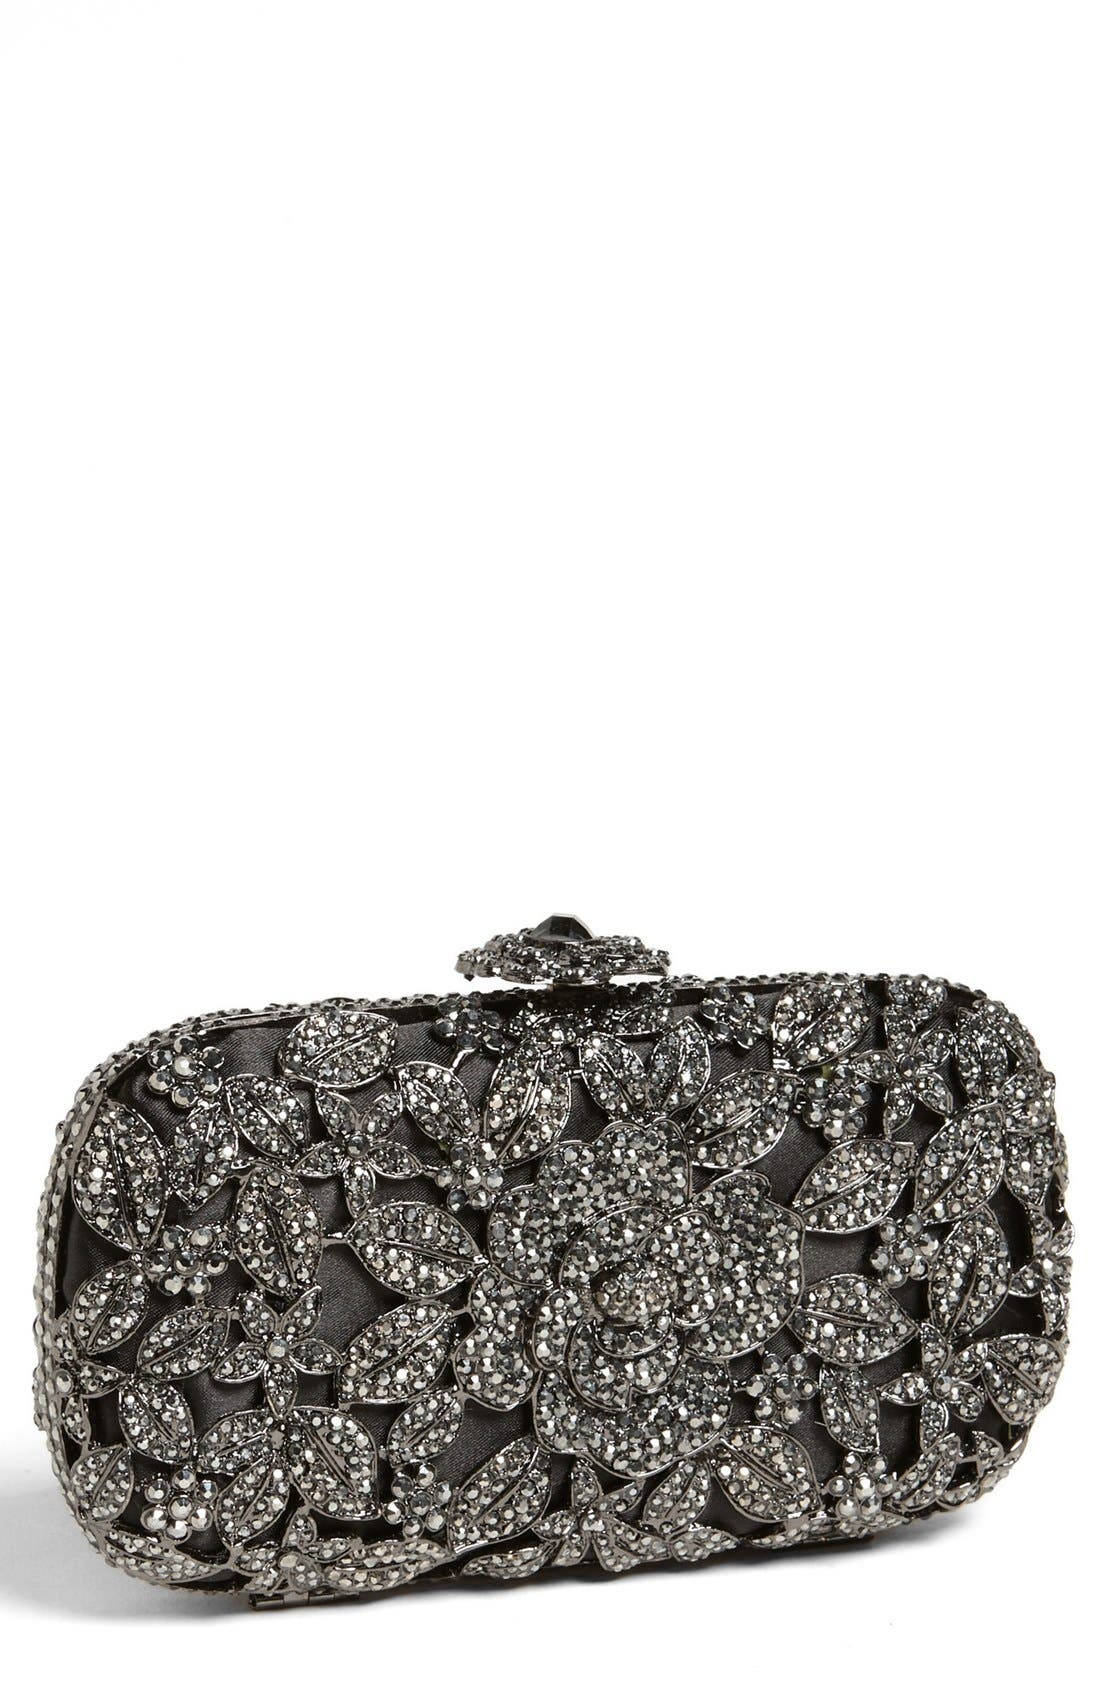 Natasha Couture Crystal Caged Floral Clutch,                             Main thumbnail 1, color,                             001